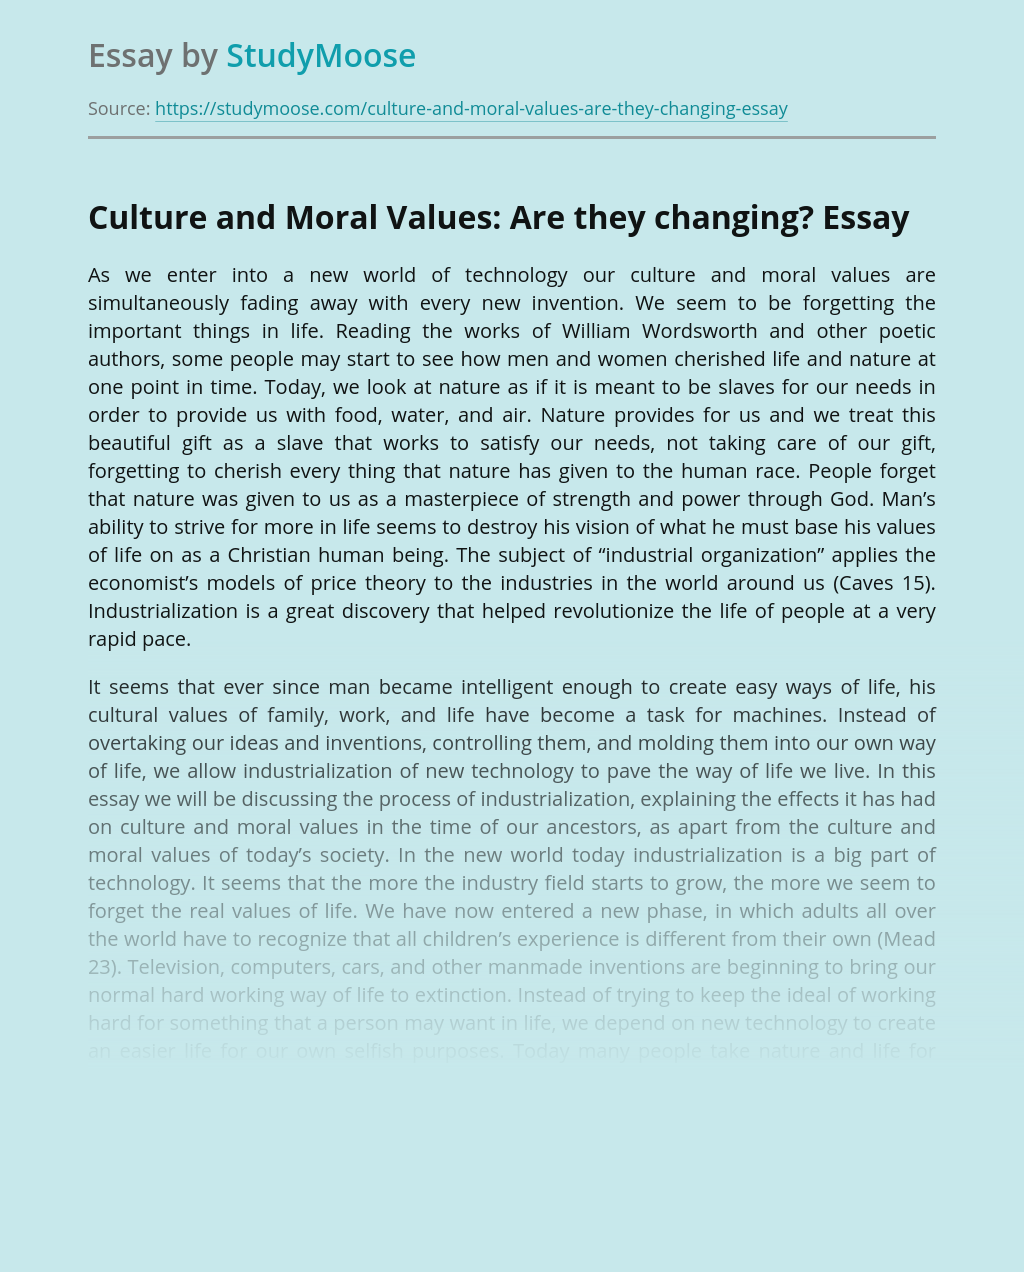 Culture and Moral Values: Are they changing?